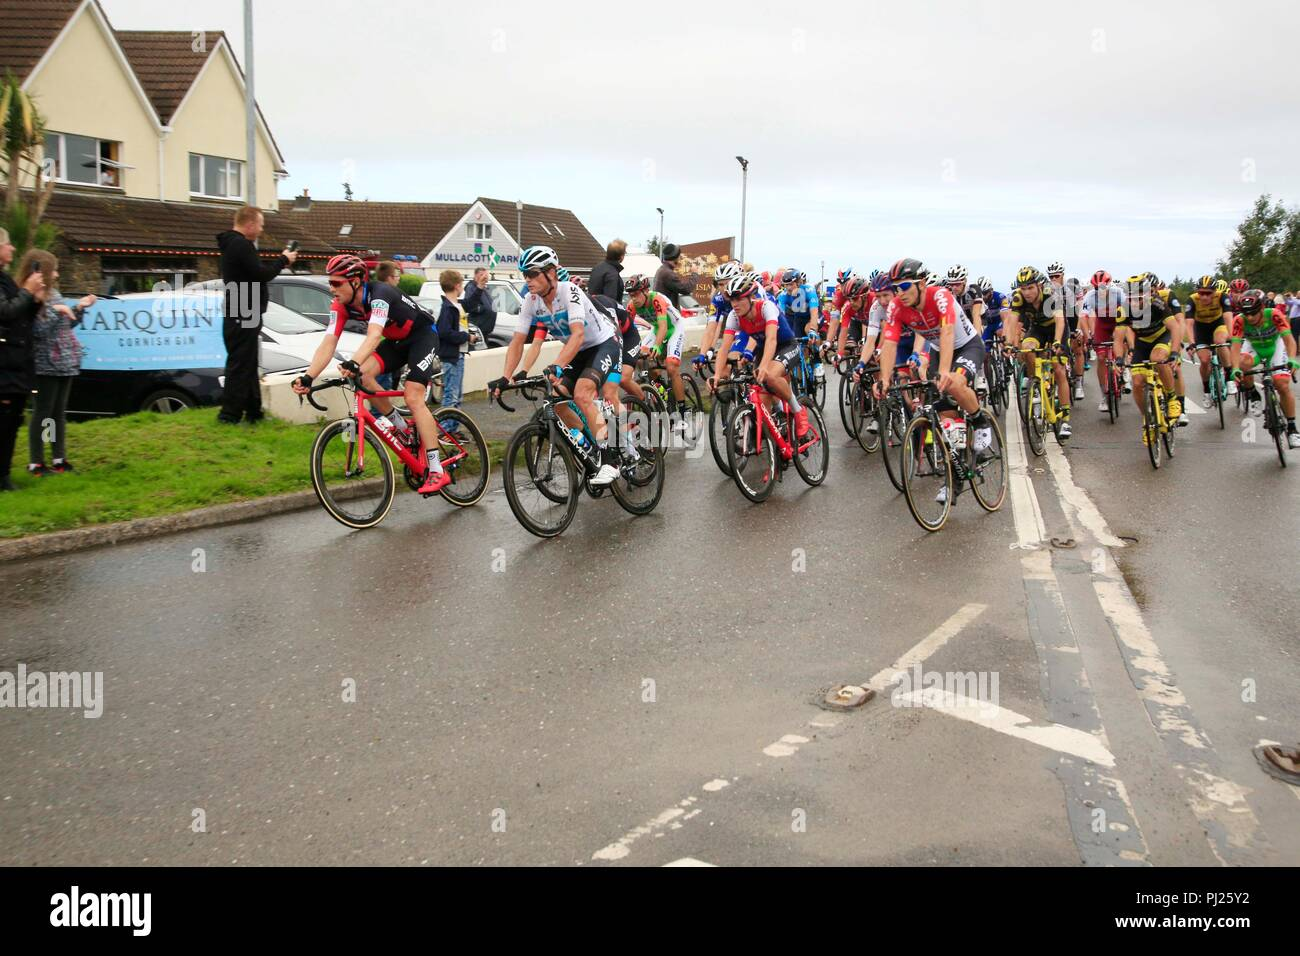 Mullacott, UK. 3rd September, 2018. Tour of Britain cycle race, North Devon Stage, UK Credit: Natasha Quarmby/Alamy Live News - Stock Image